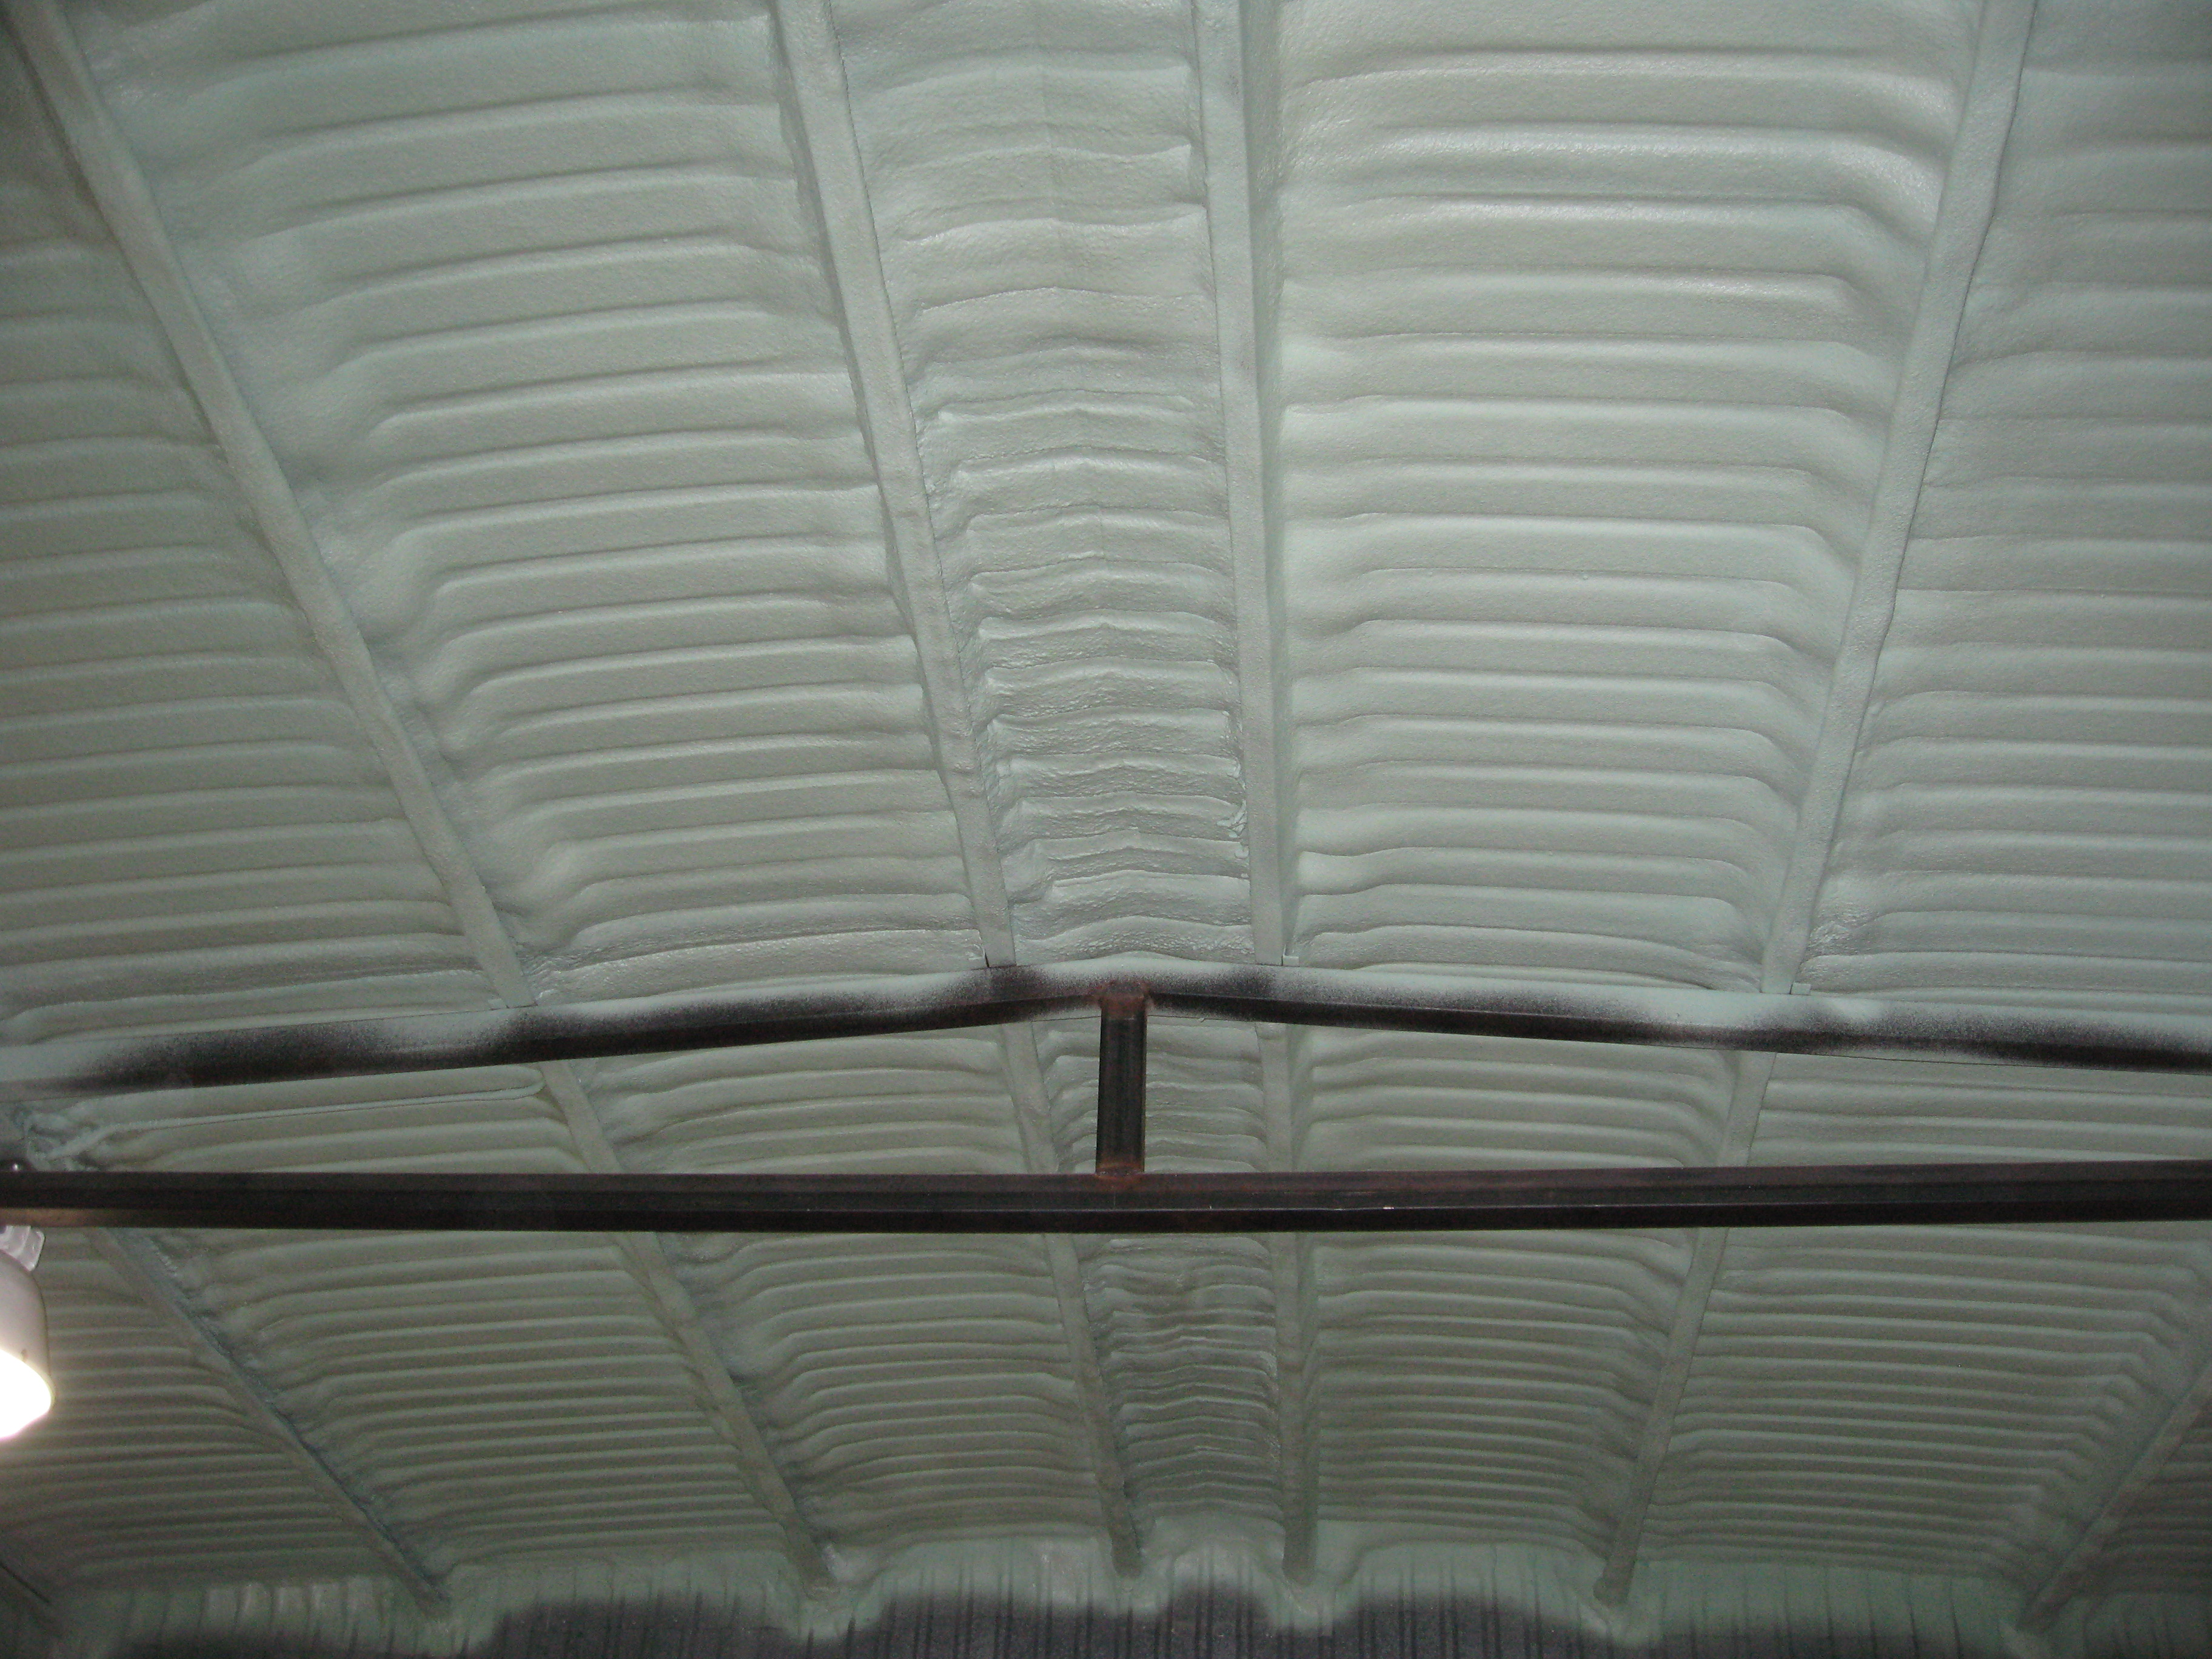 closed cell foam under metal roof